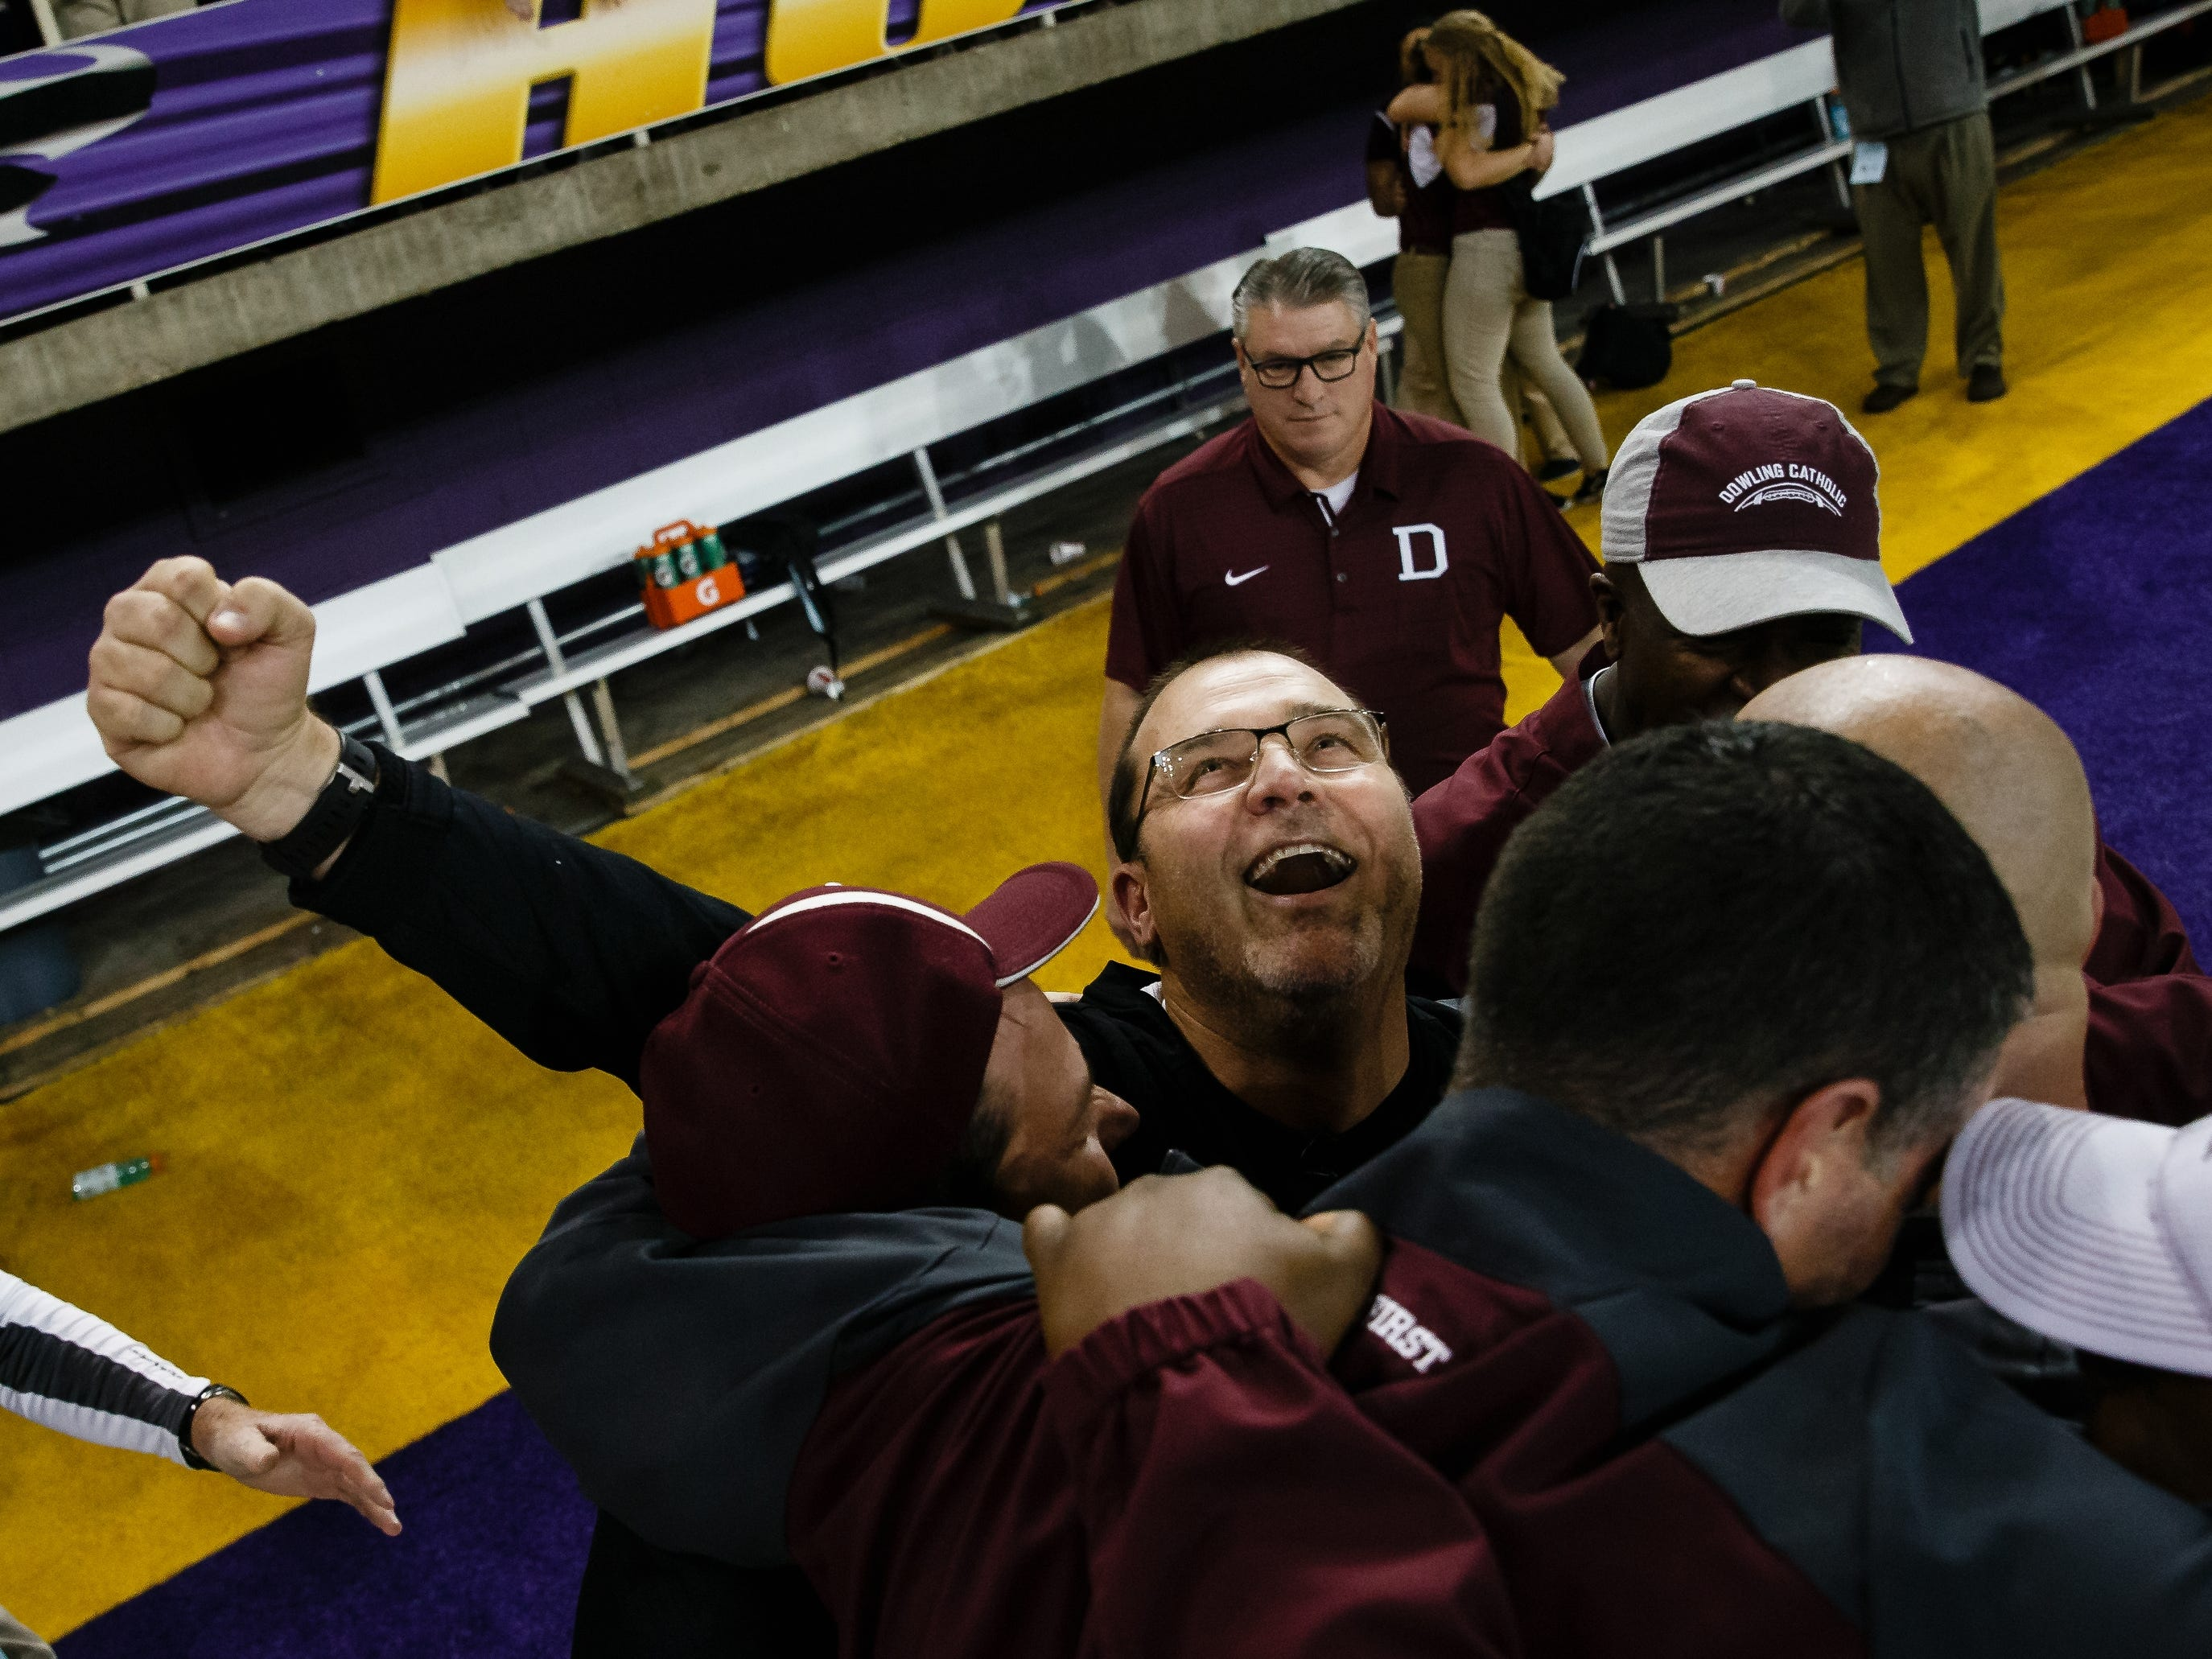 The Dowling Catholic coaching staff including head coach Tom Wilson, center, celebrate their teams 22-16 win over Cedar Falls during their class 4A state championship football game on Friday, Nov. 16, 2018, in Cedar Falls.